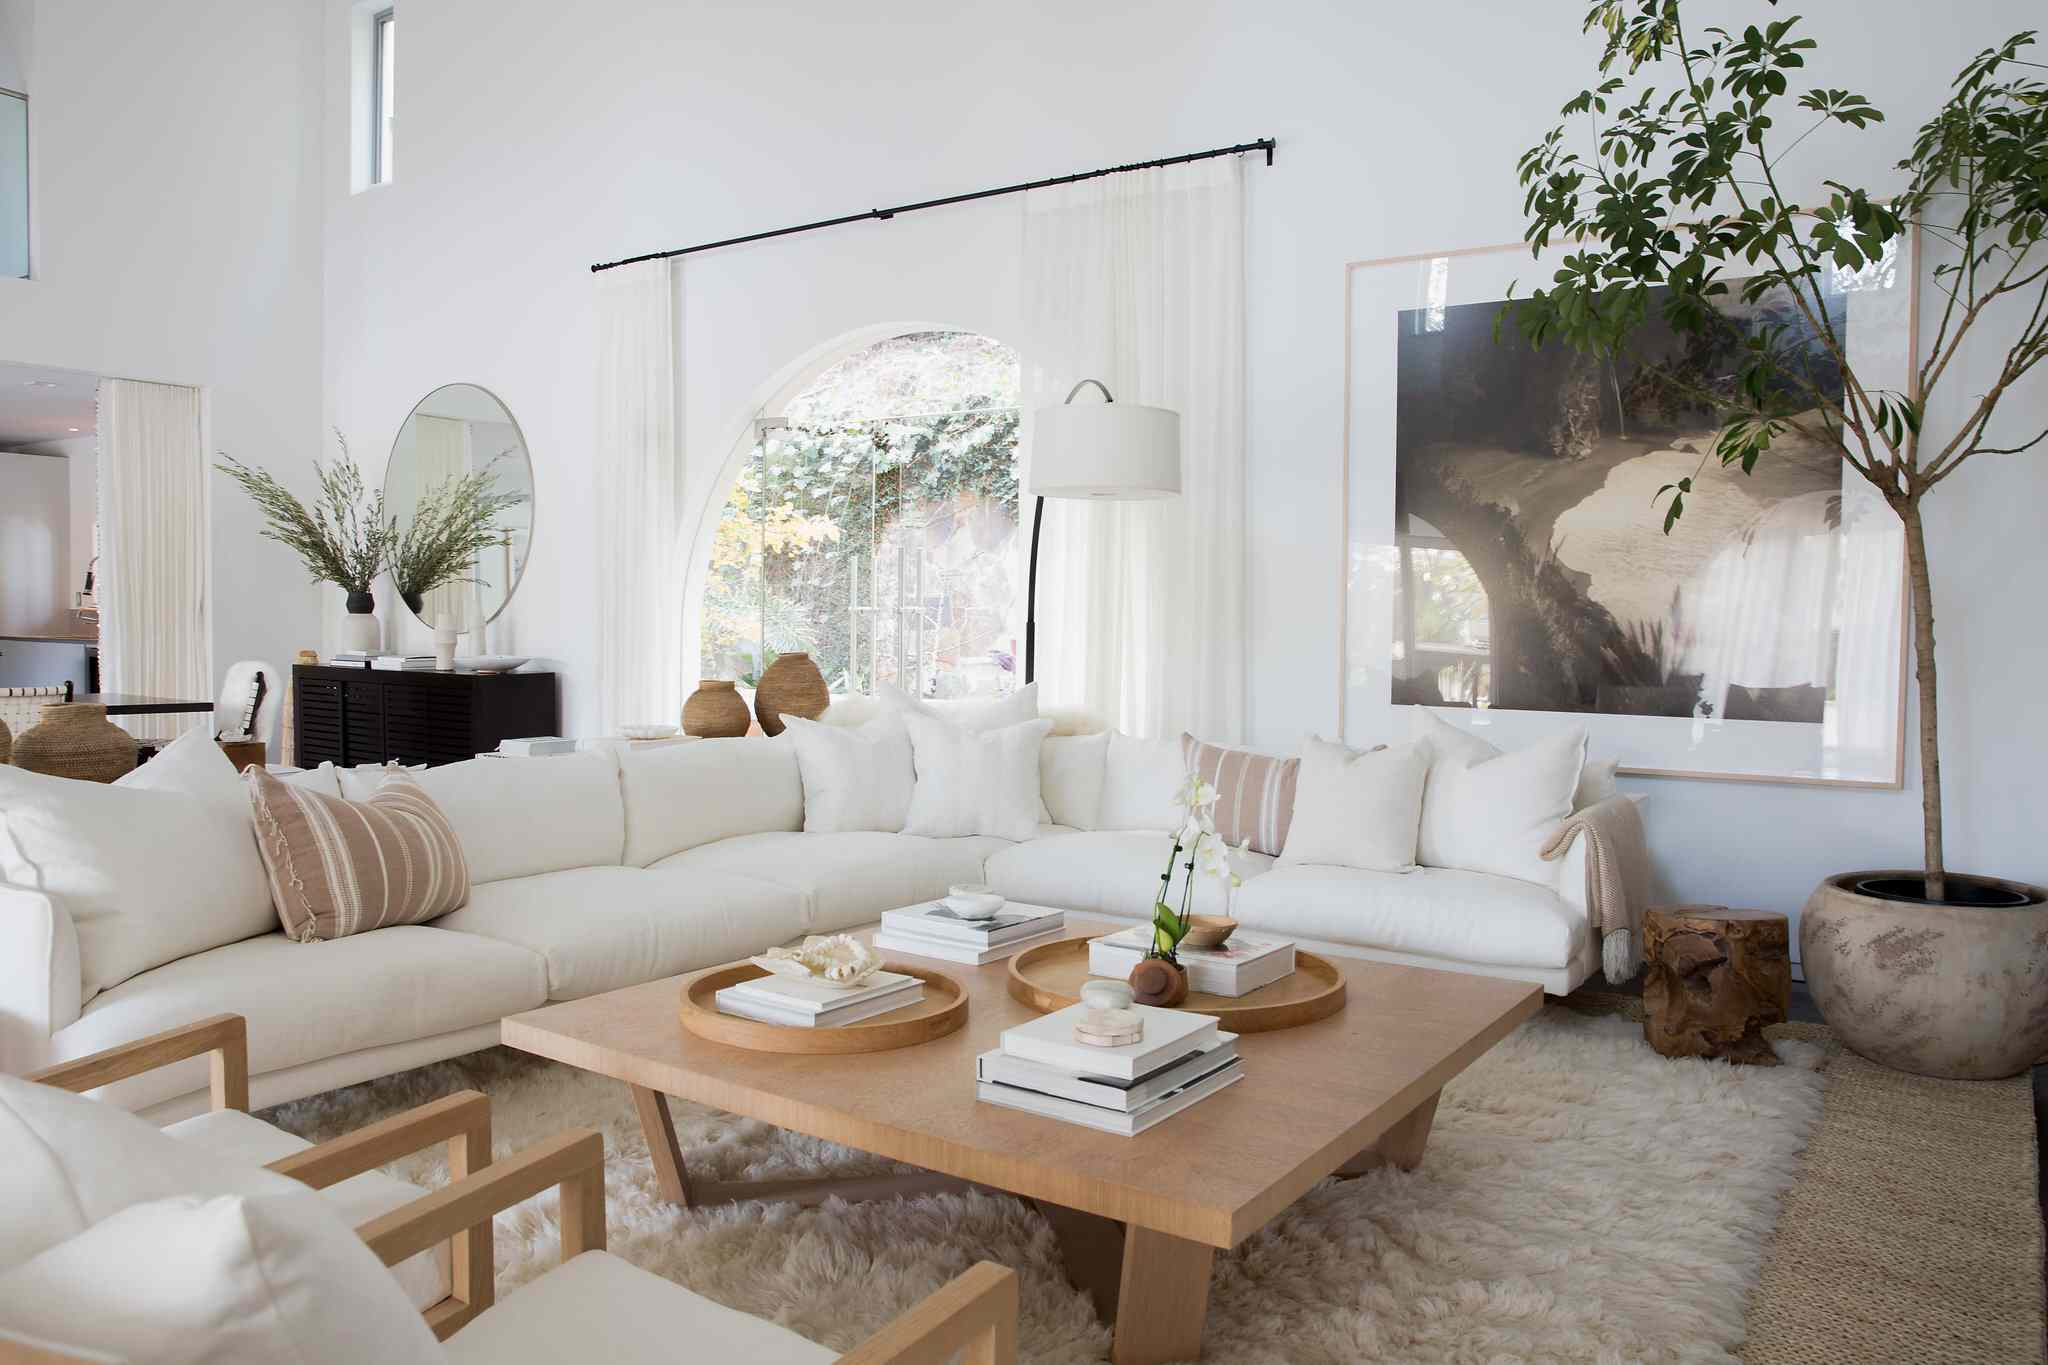 Bright living room with low furniture around a large coffee table